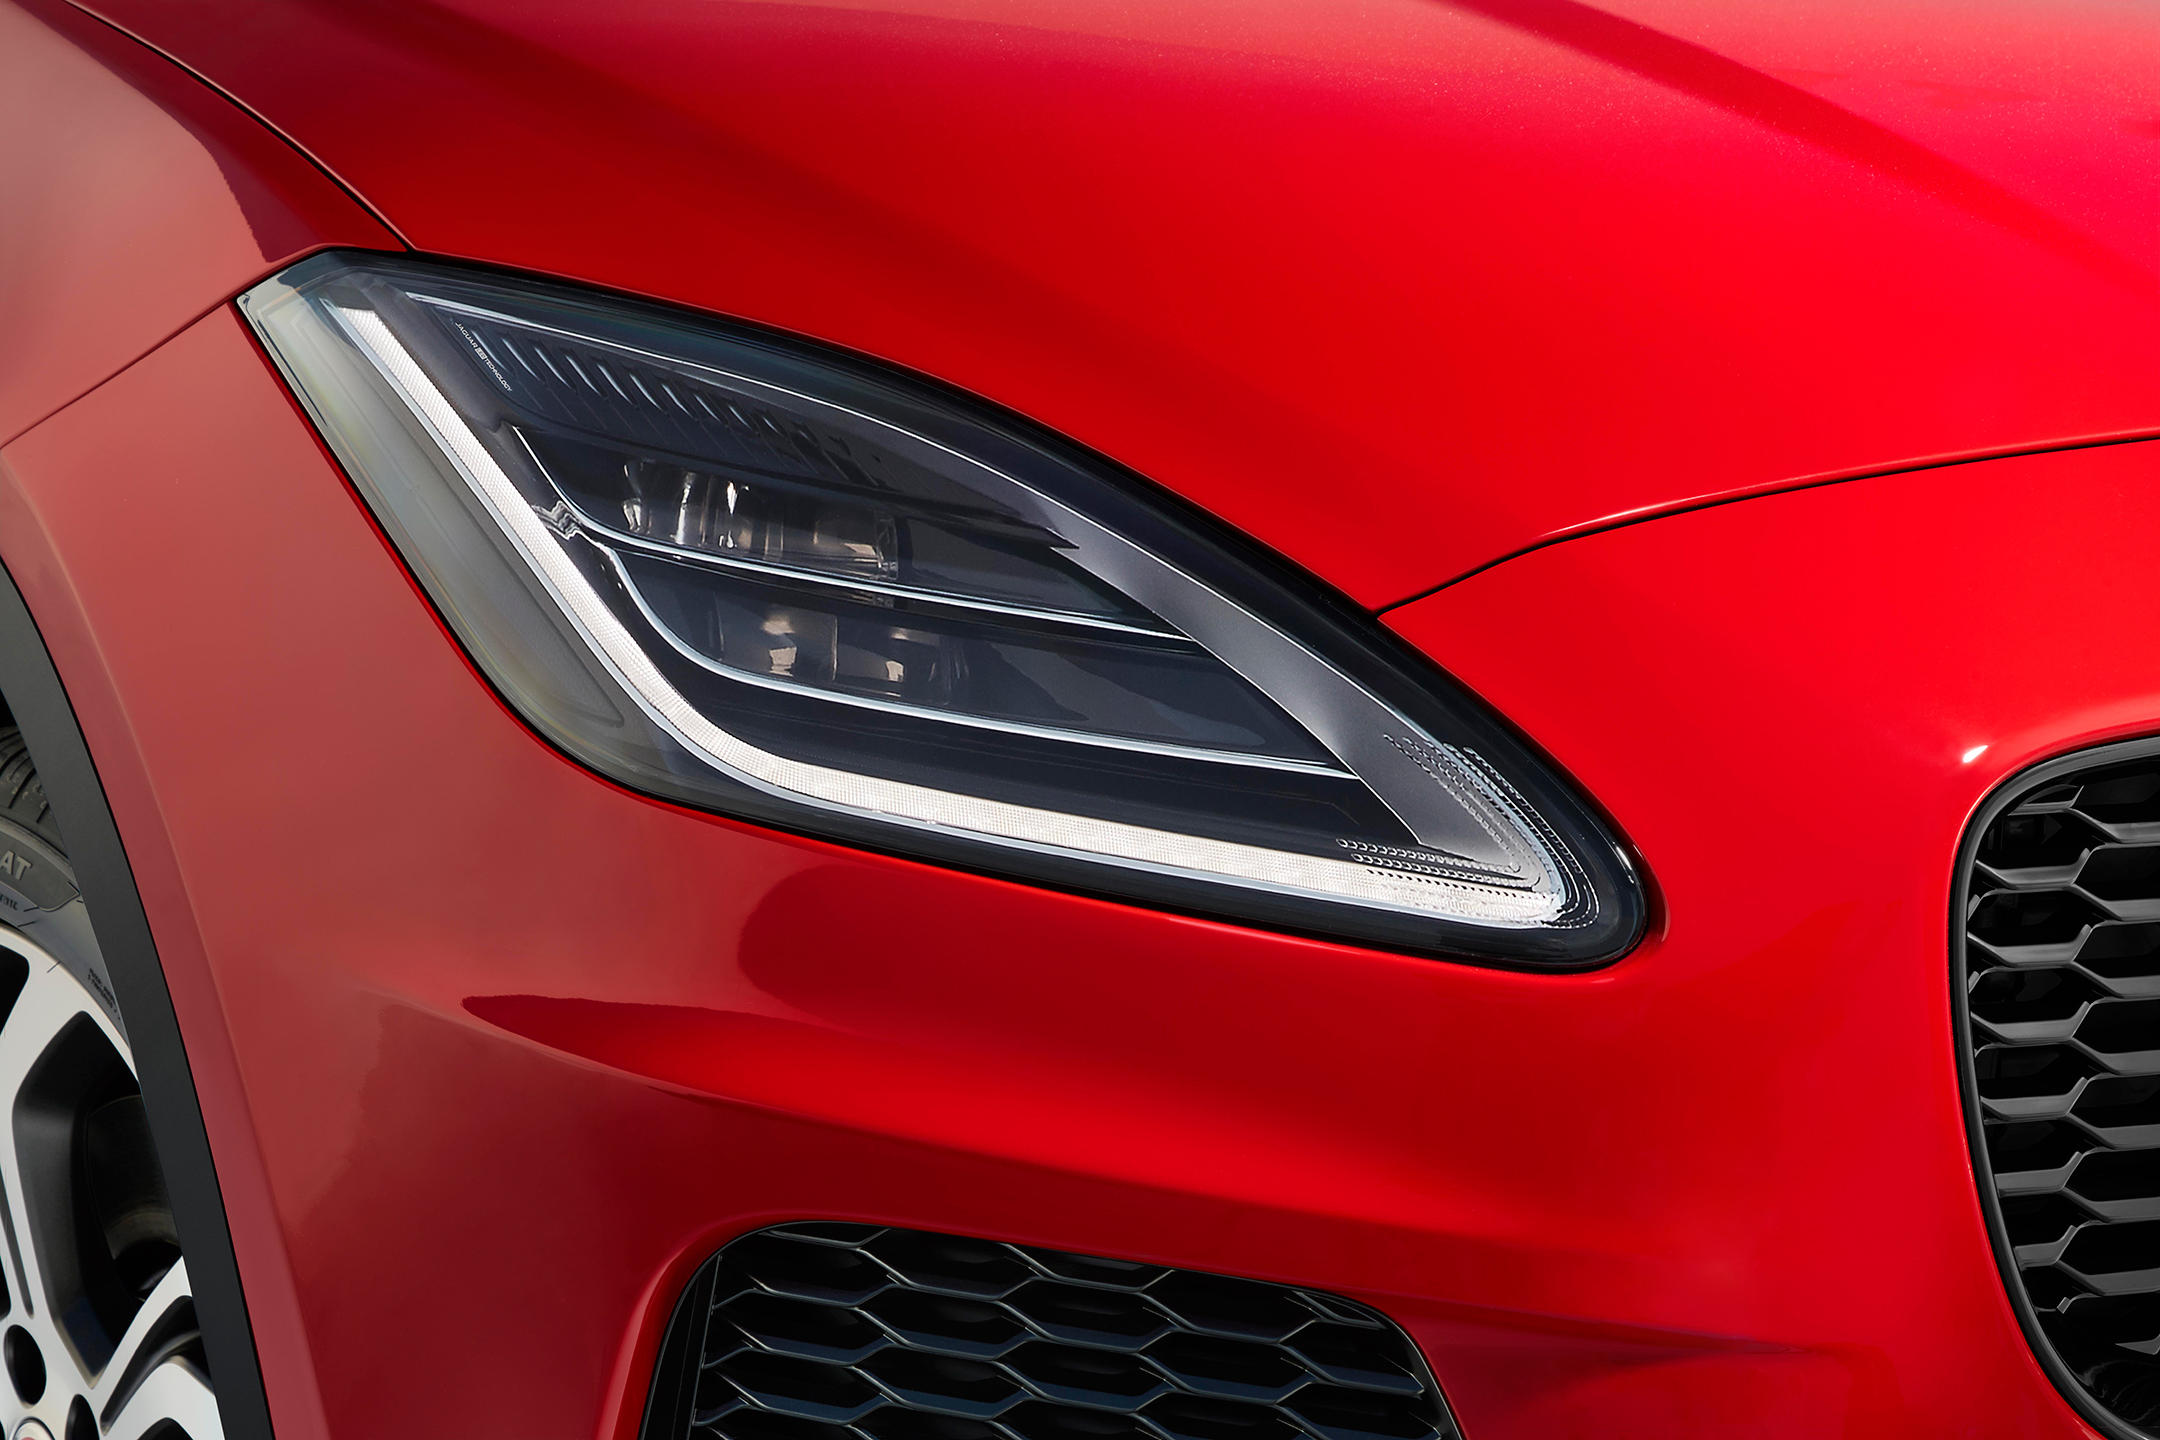 Jaguar E-PACE - 2017 - front light